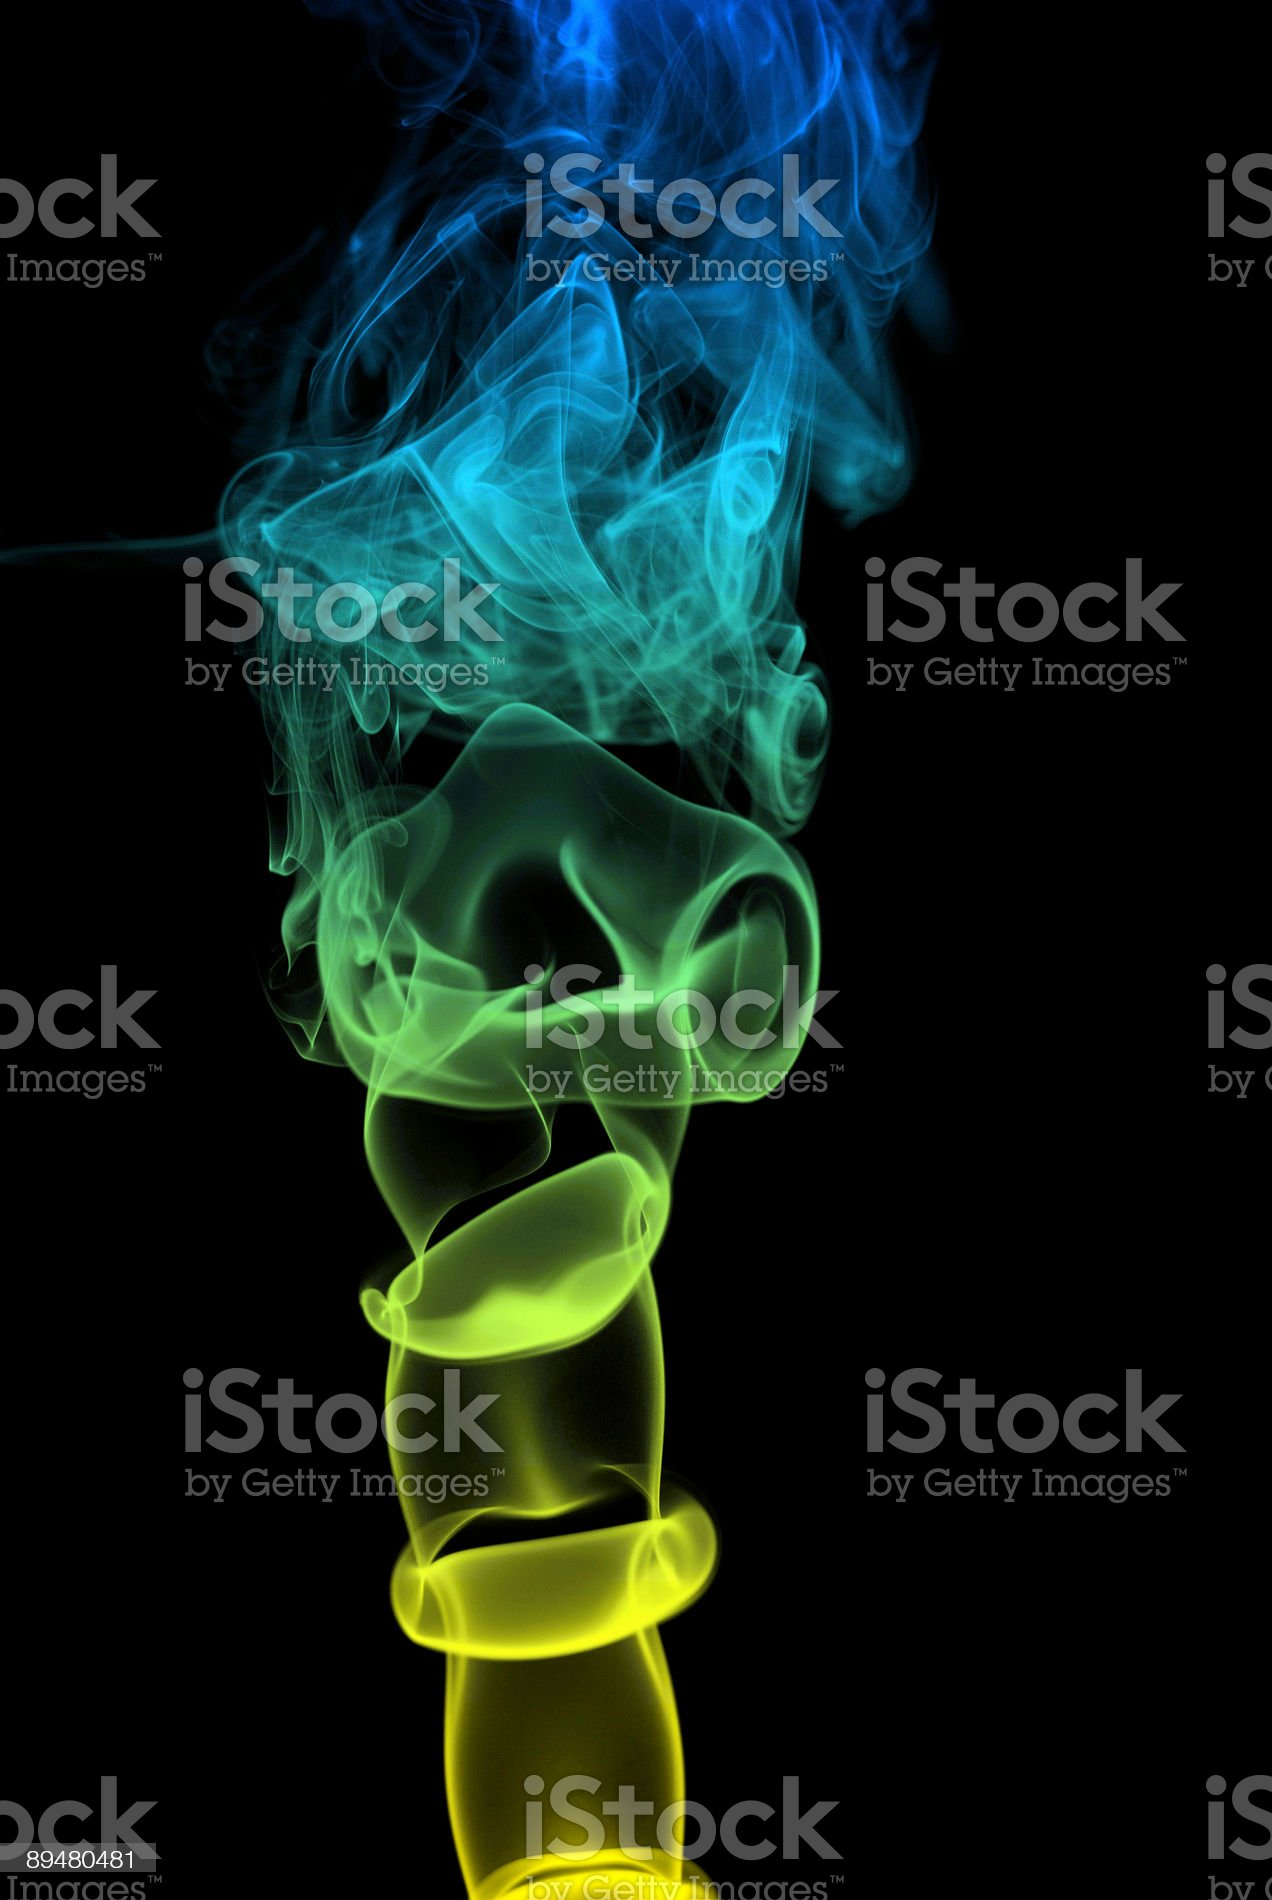 Smoke Art Series royalty-free stock photo